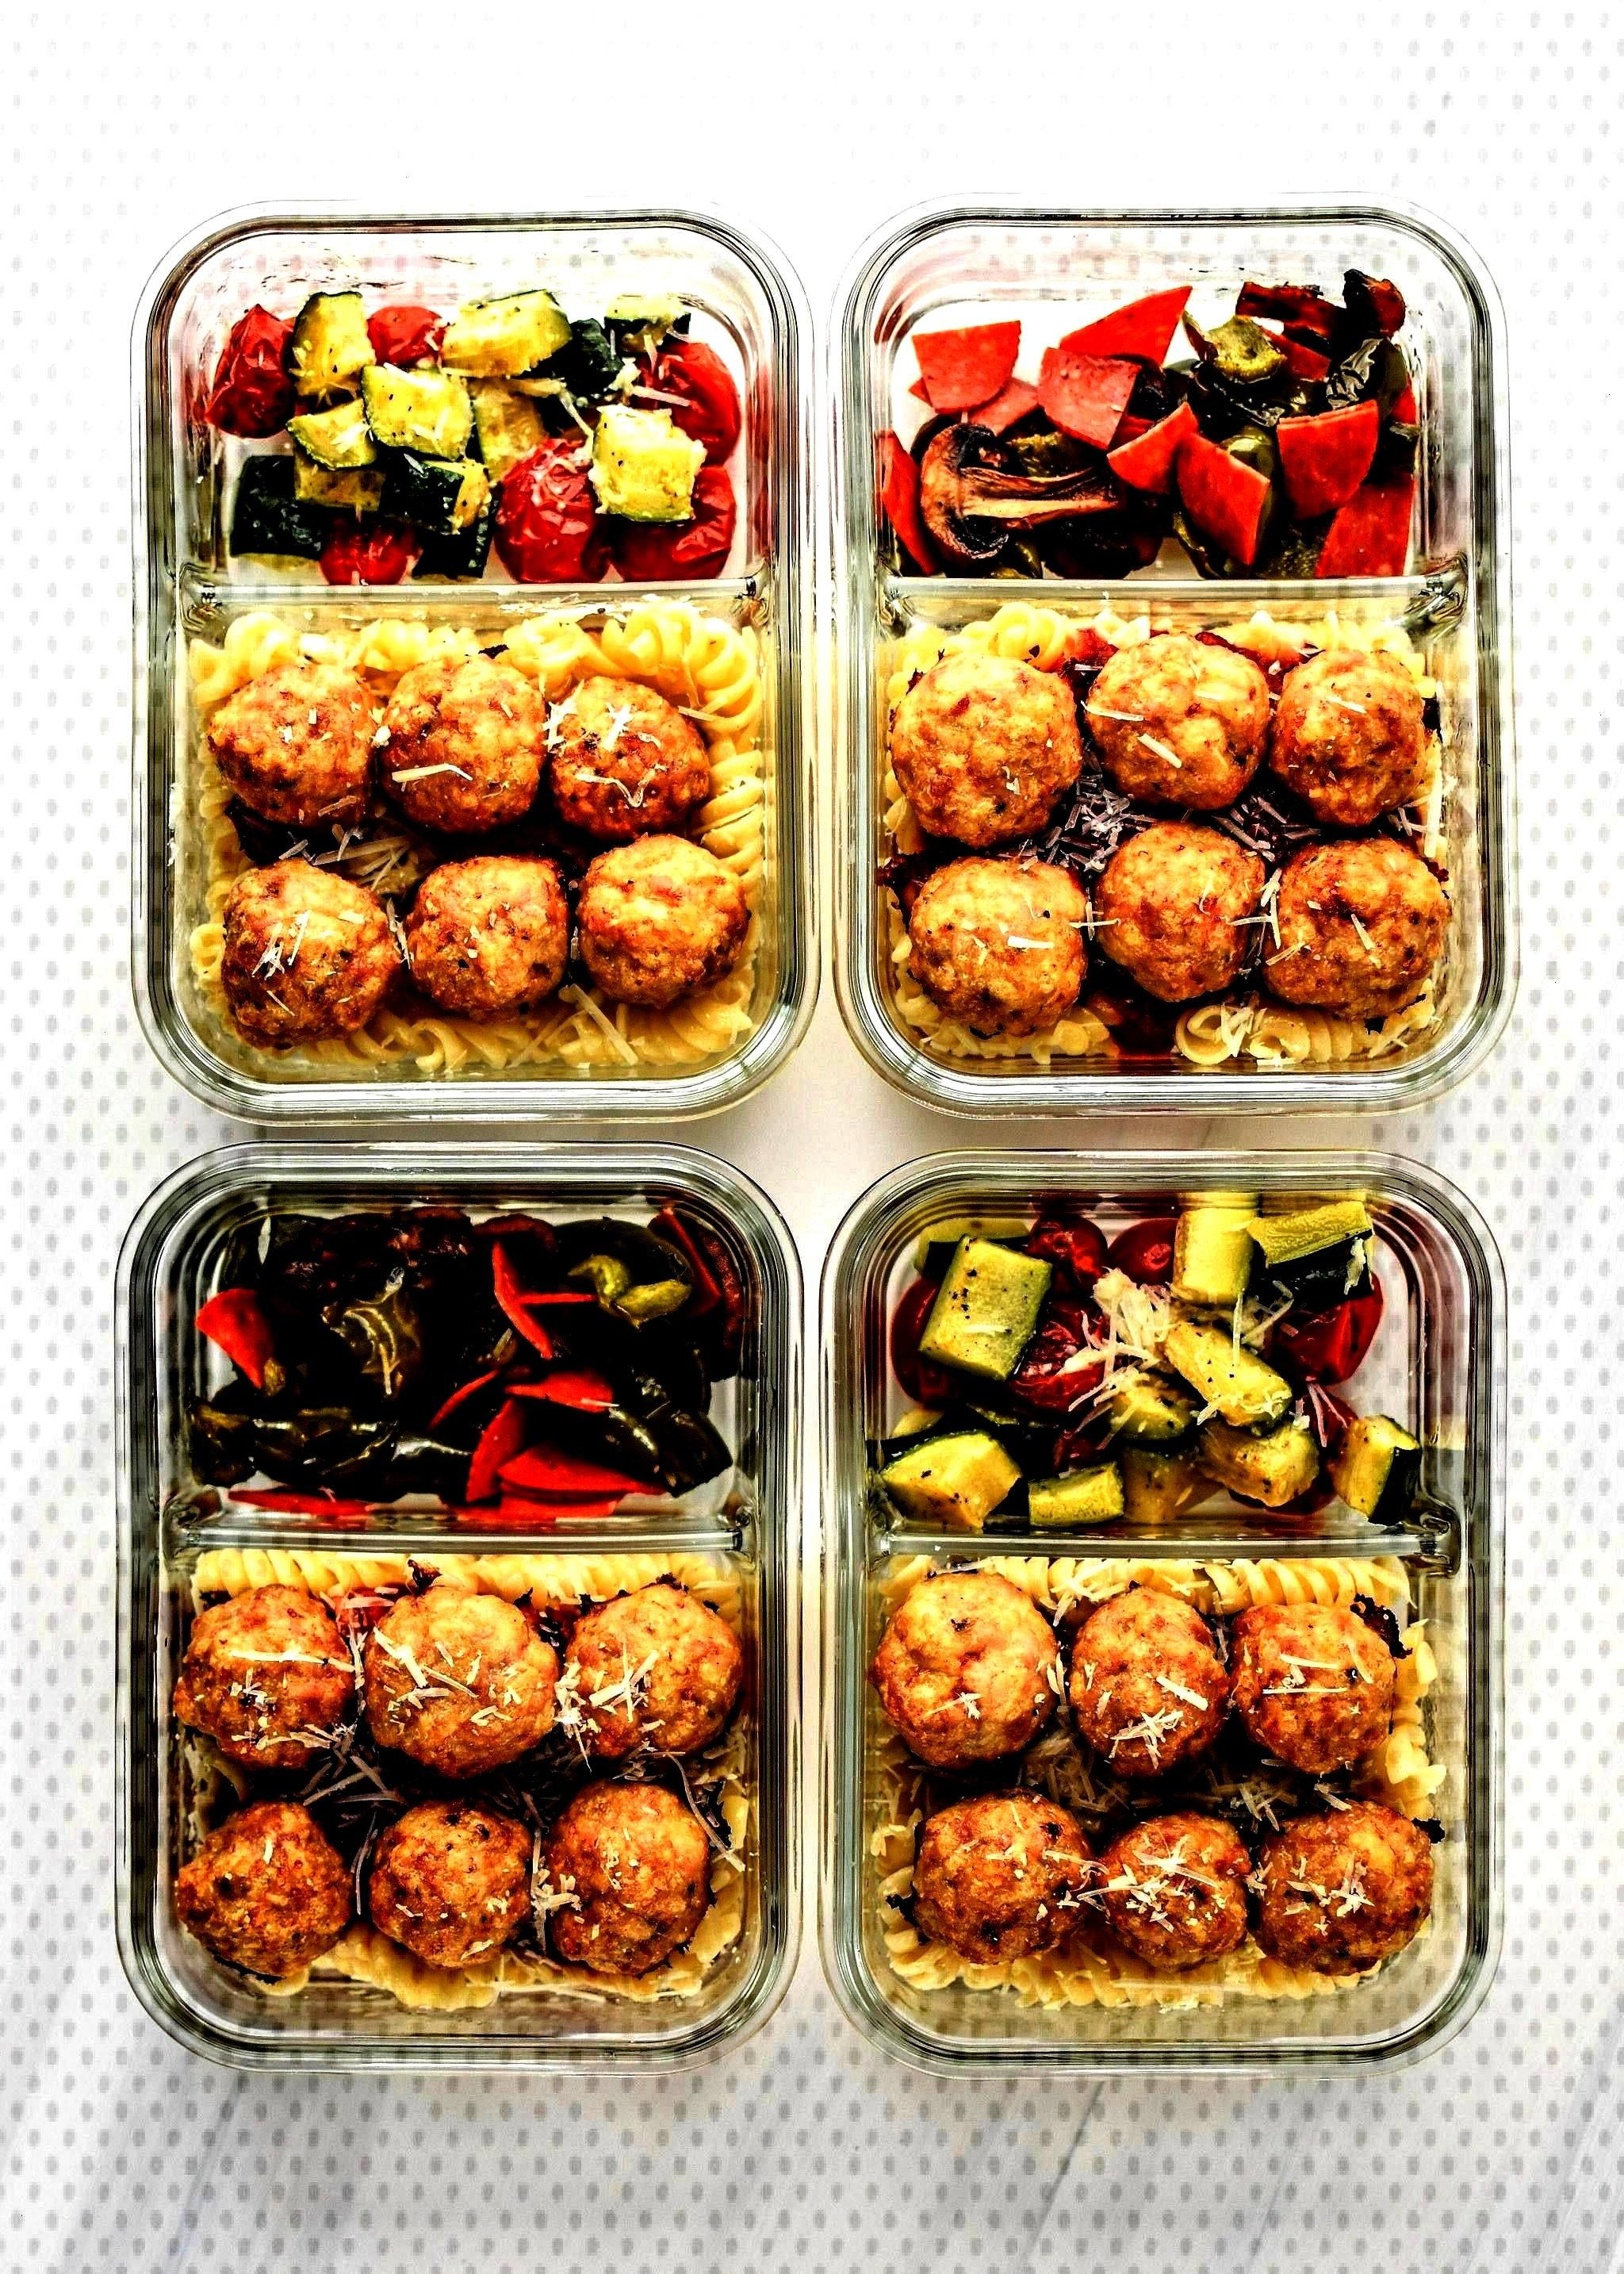 Meal Prep Lunches -Chicken Meatballs Two Ways Meal Prep Lunches -Meatballs Two Ways Meal Prep Lunch